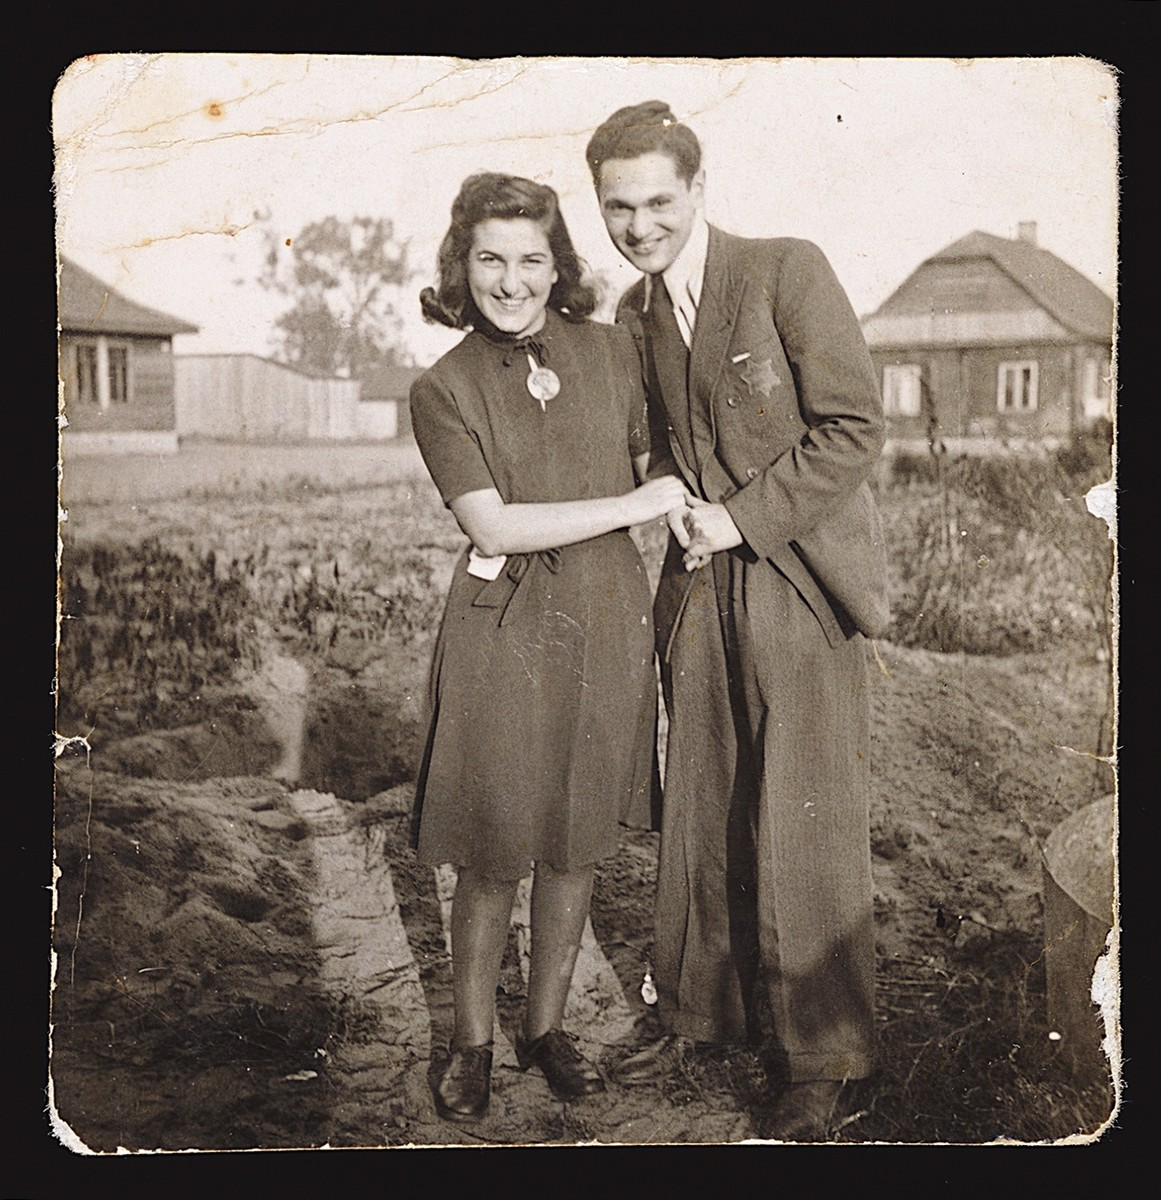 Yehudit Reiches and her boyfriend in the Kovno ghetto shortly before her eighteenth birthday.